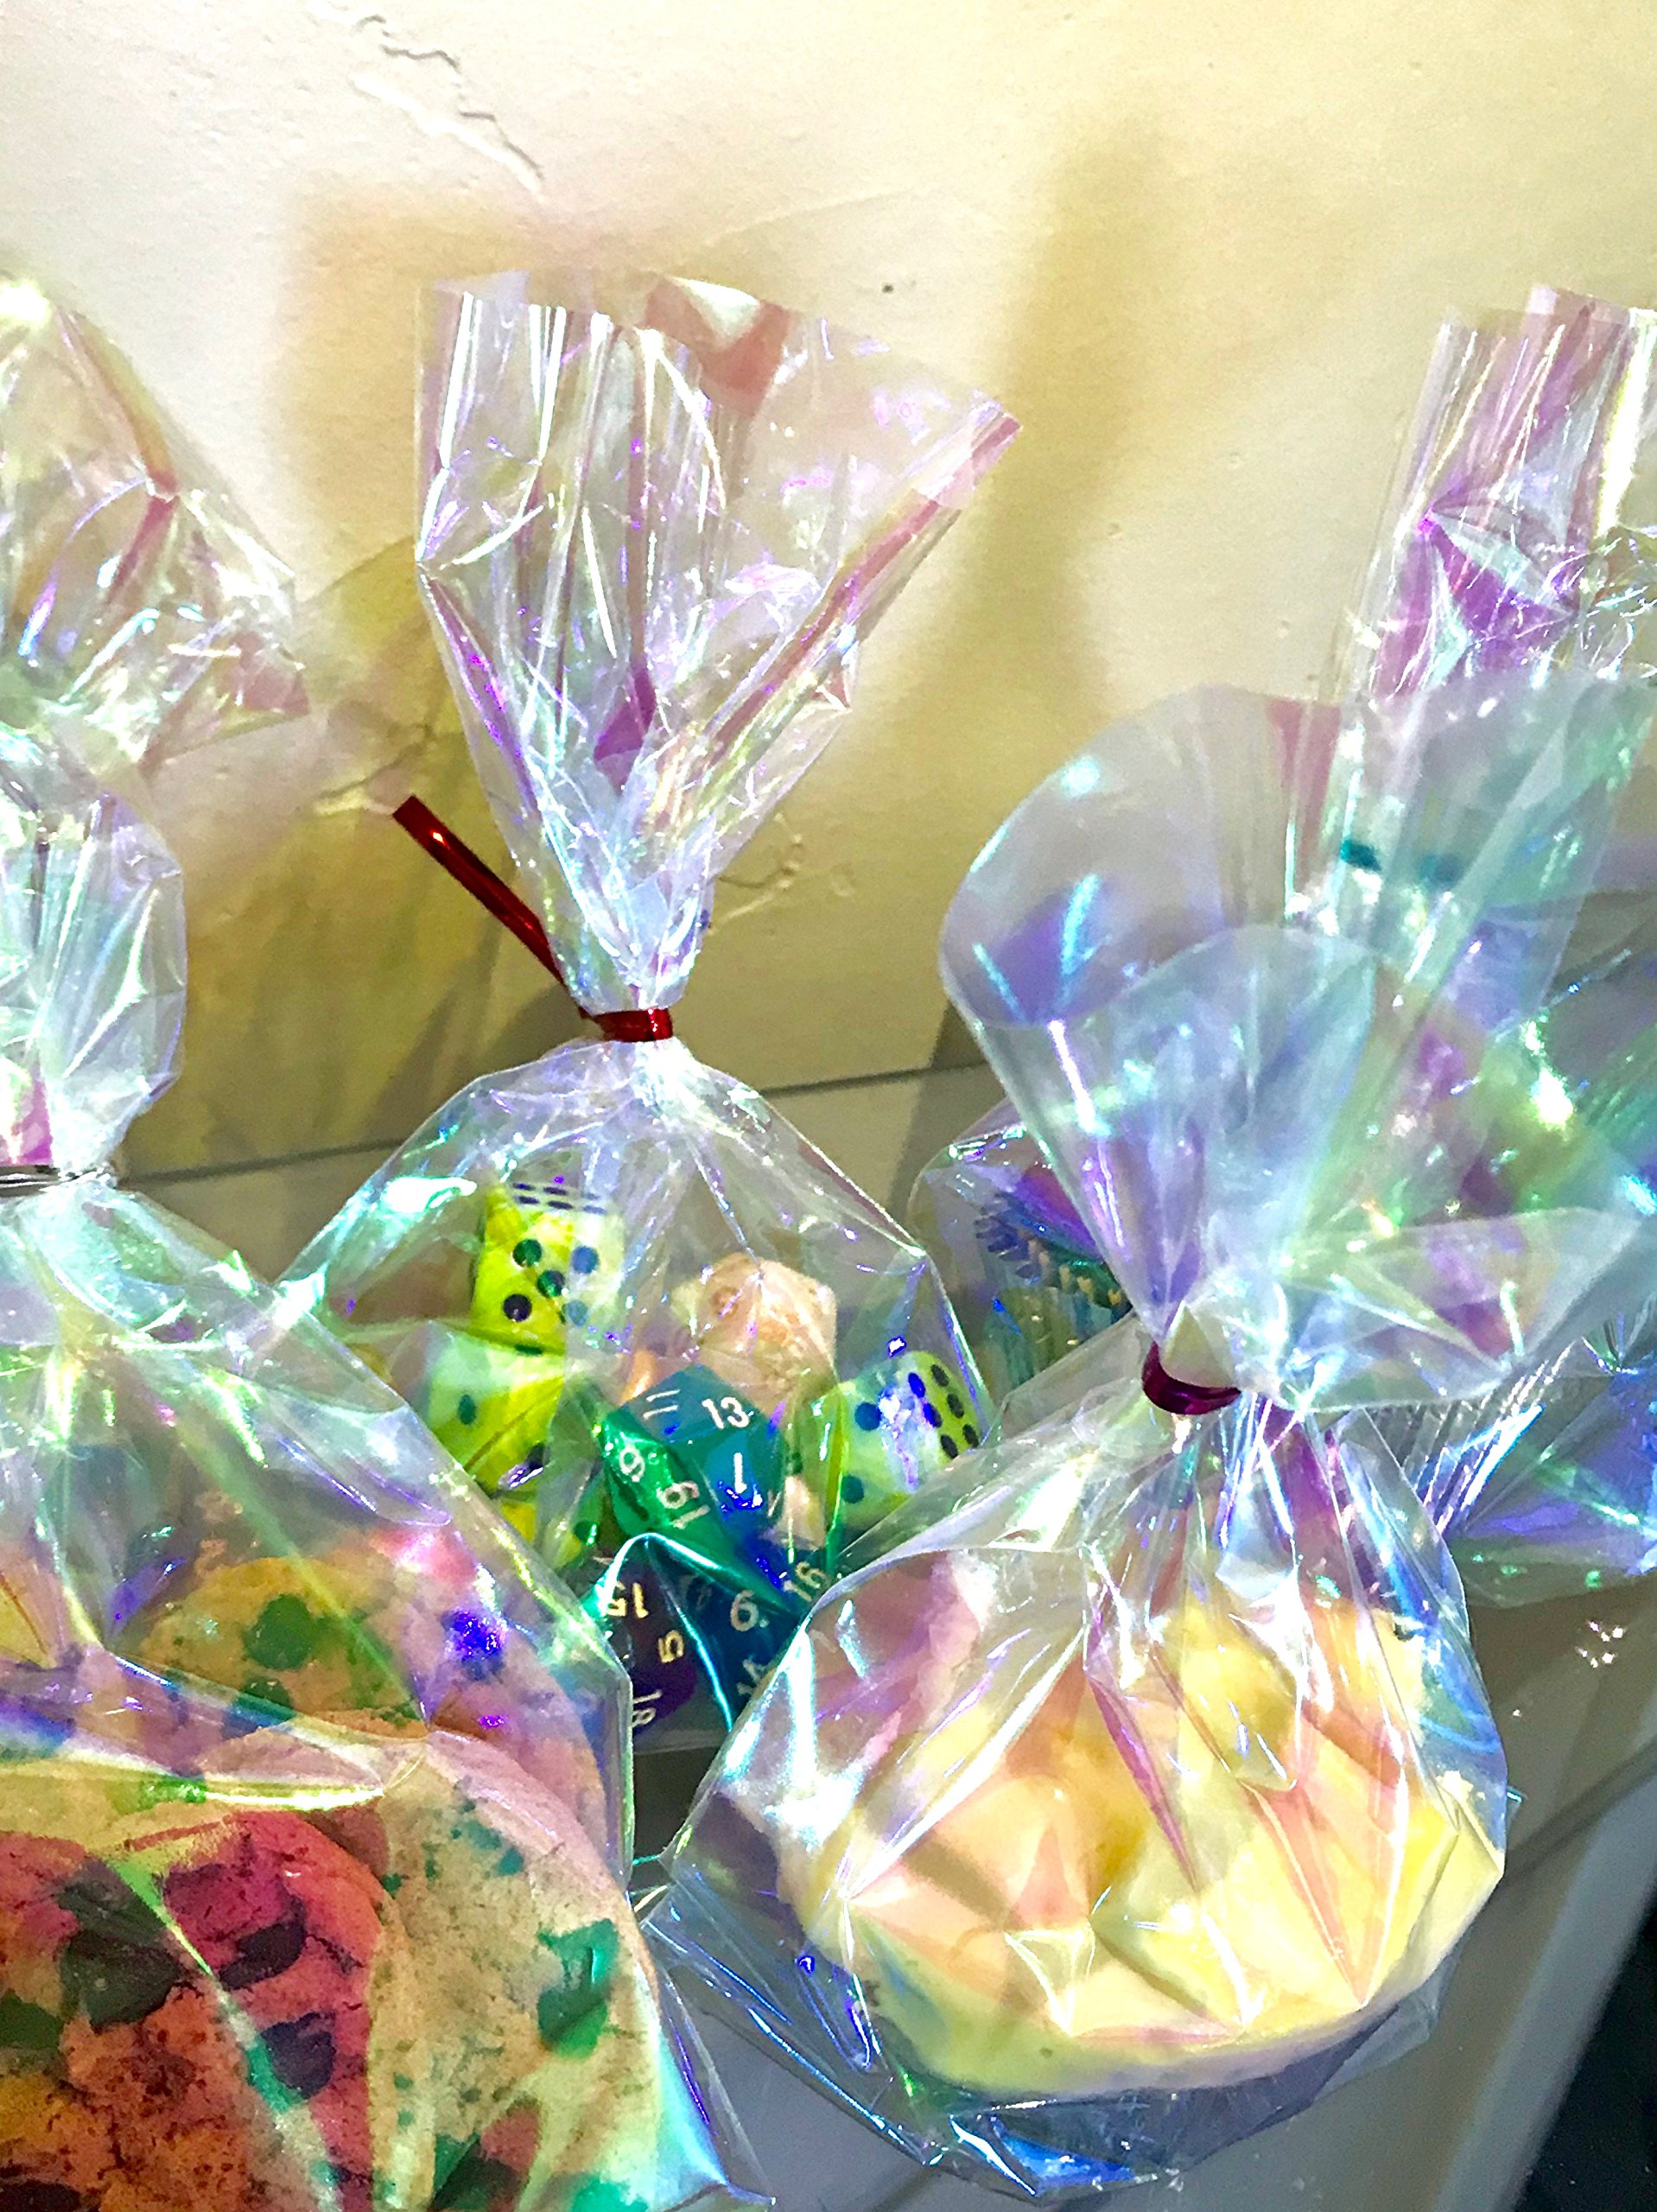 75 Iridescent Holographic Cellophane Party Favor Treat Bags 5x7.5'' with Twist Ties for Mermaid Fairy Princess Alice in Wonderland Mad Hatter Unicorn Birthday Party Supplies 5x7.5''